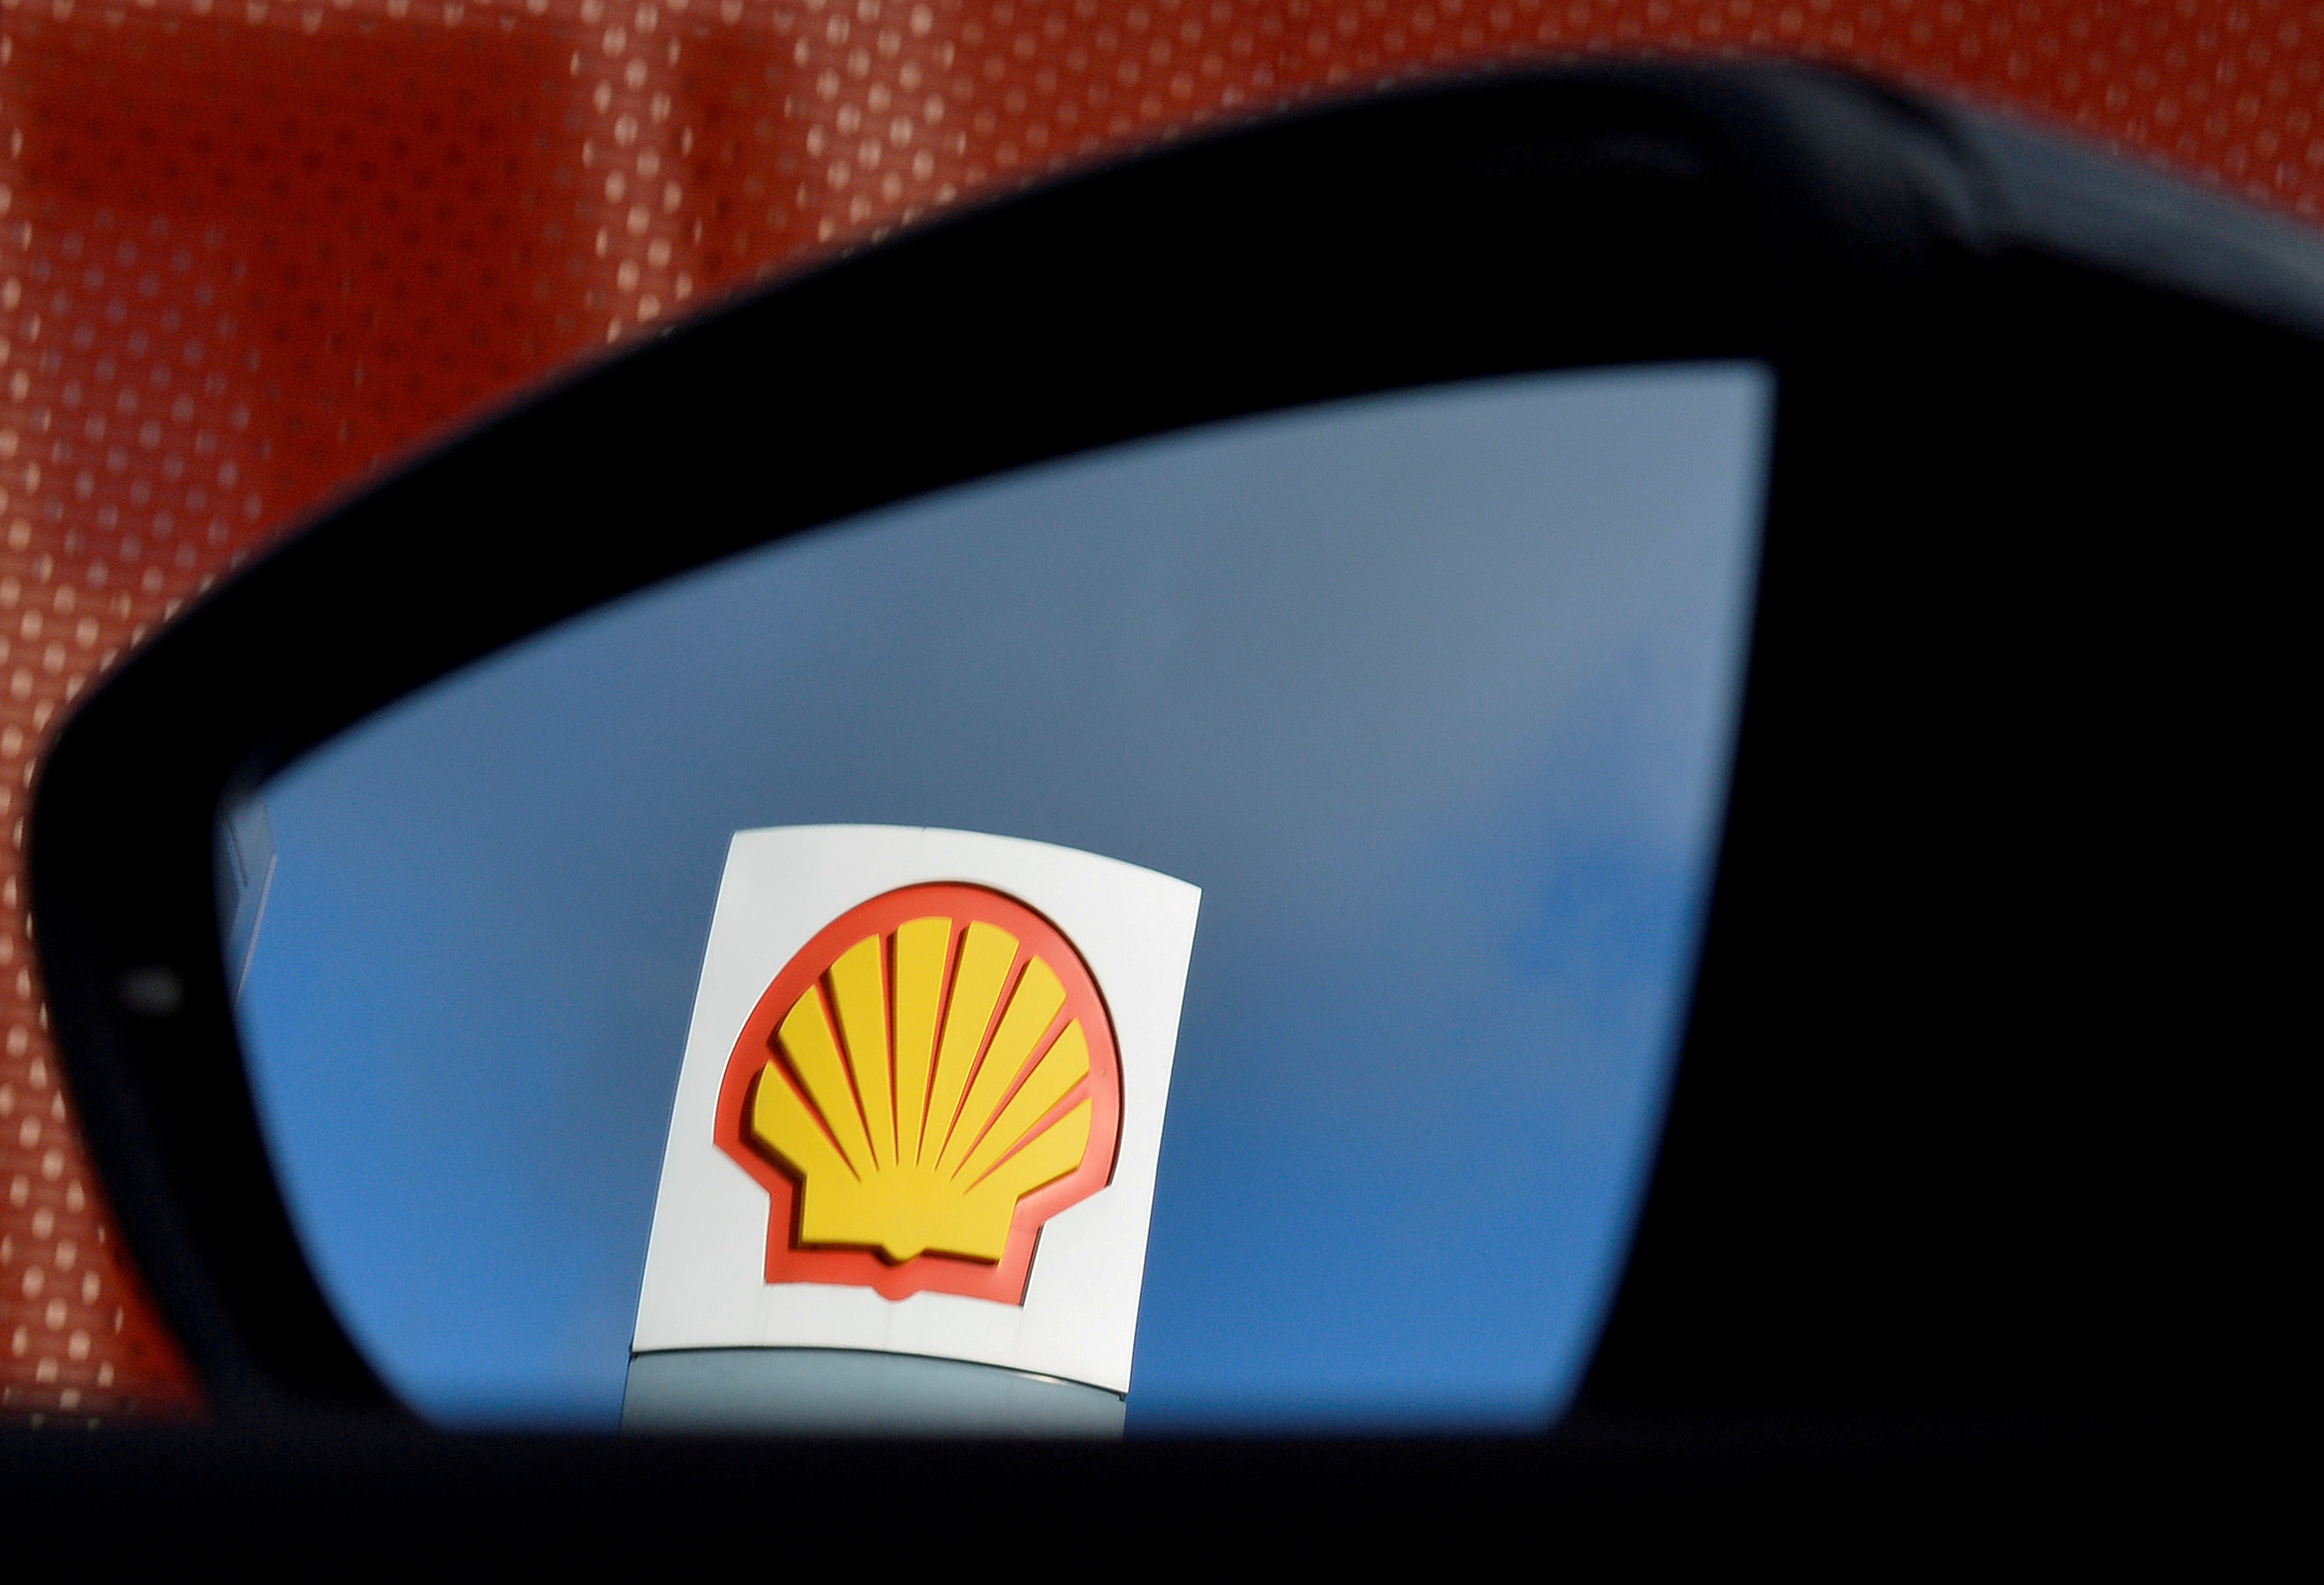 A Shell logo is seen reflected in a car's side mirror at a petrol station in west London, Britain, January 29, 2015. REUTERS/Toby Melville